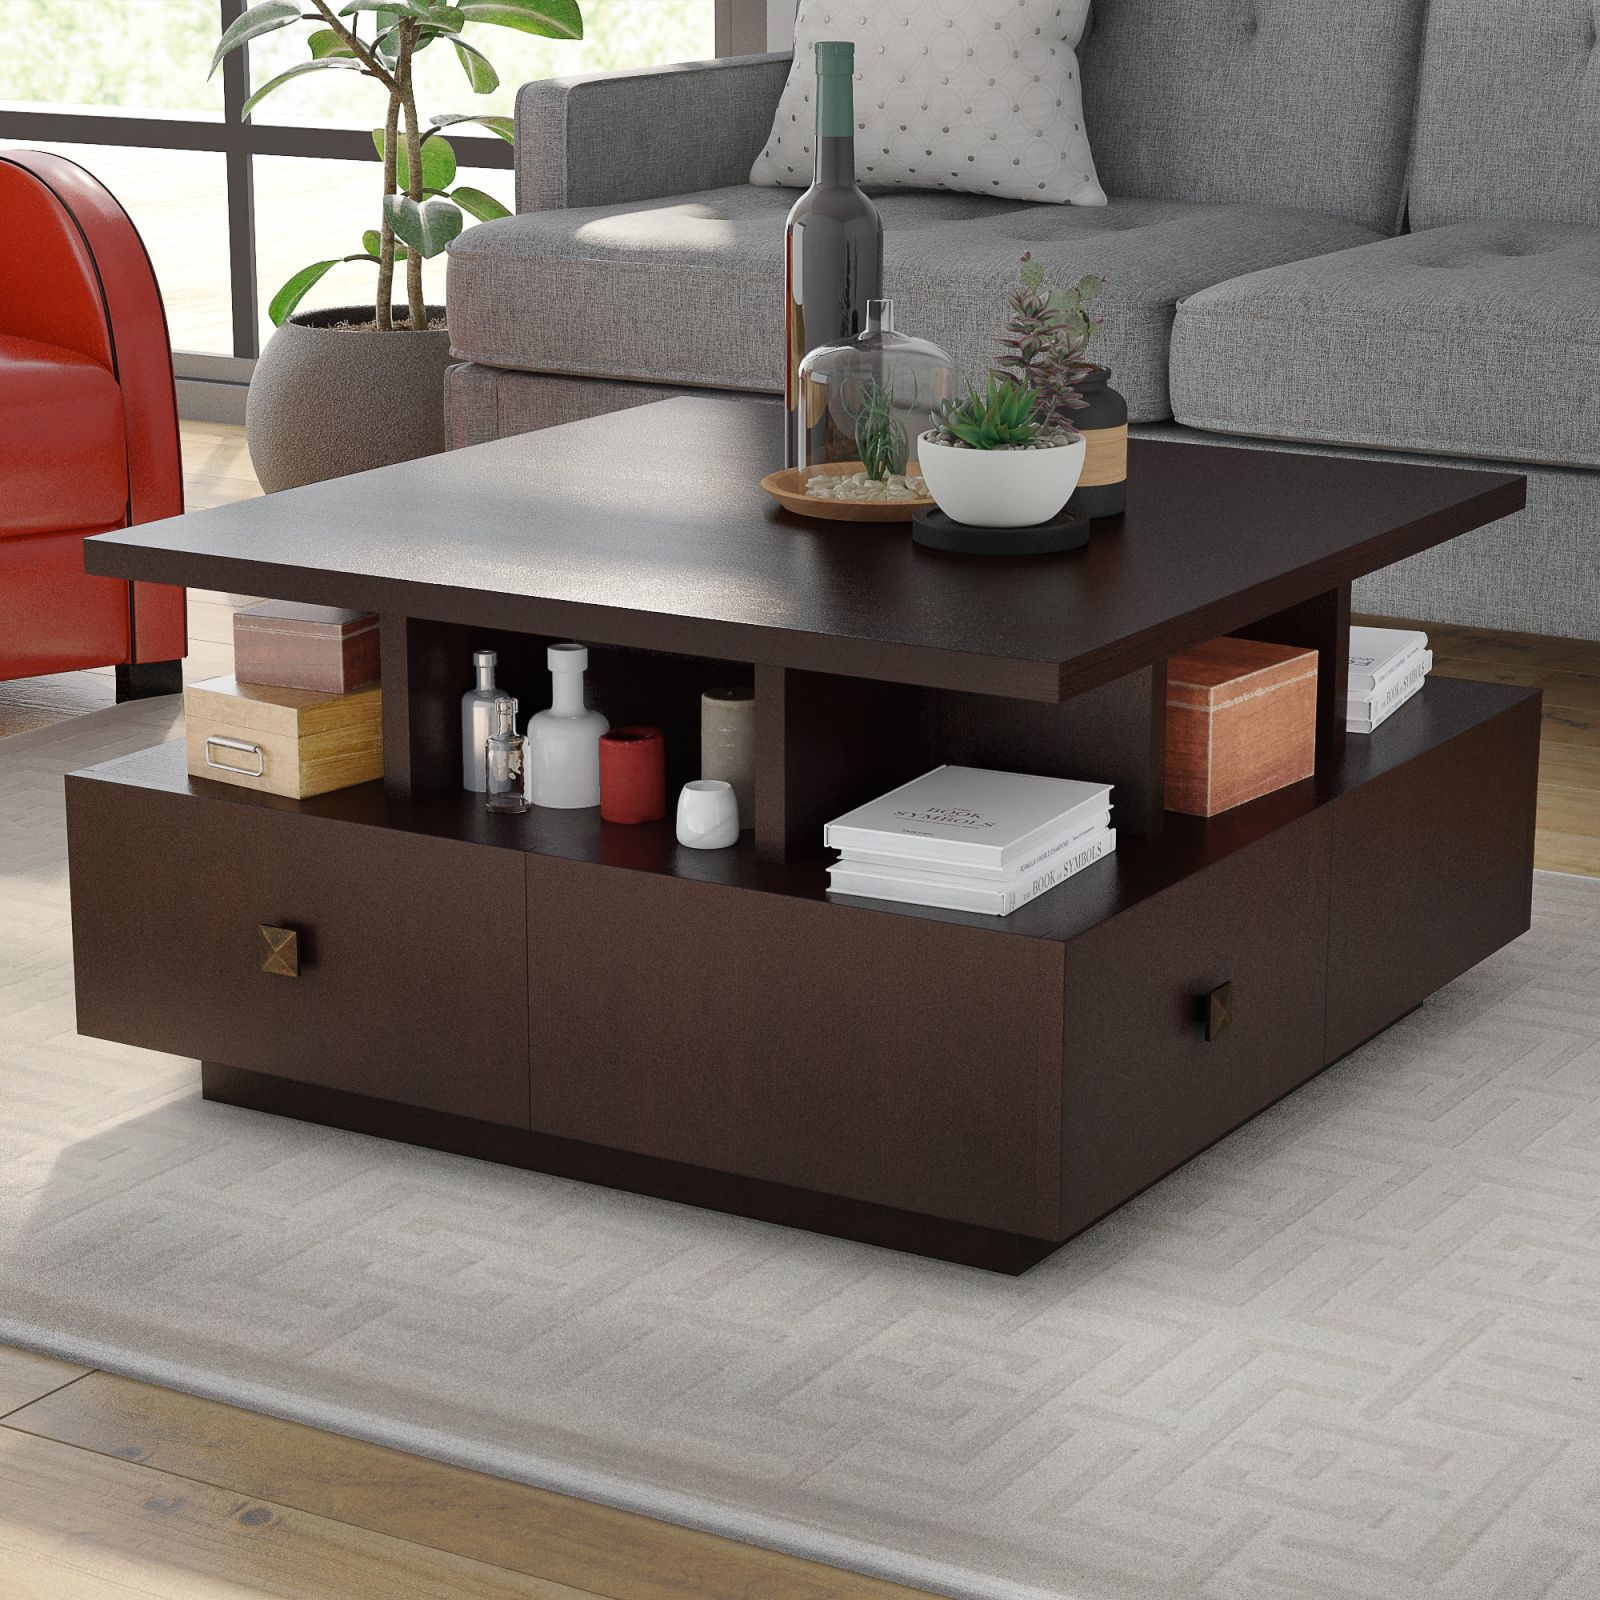 Square Coffee Table With Storage